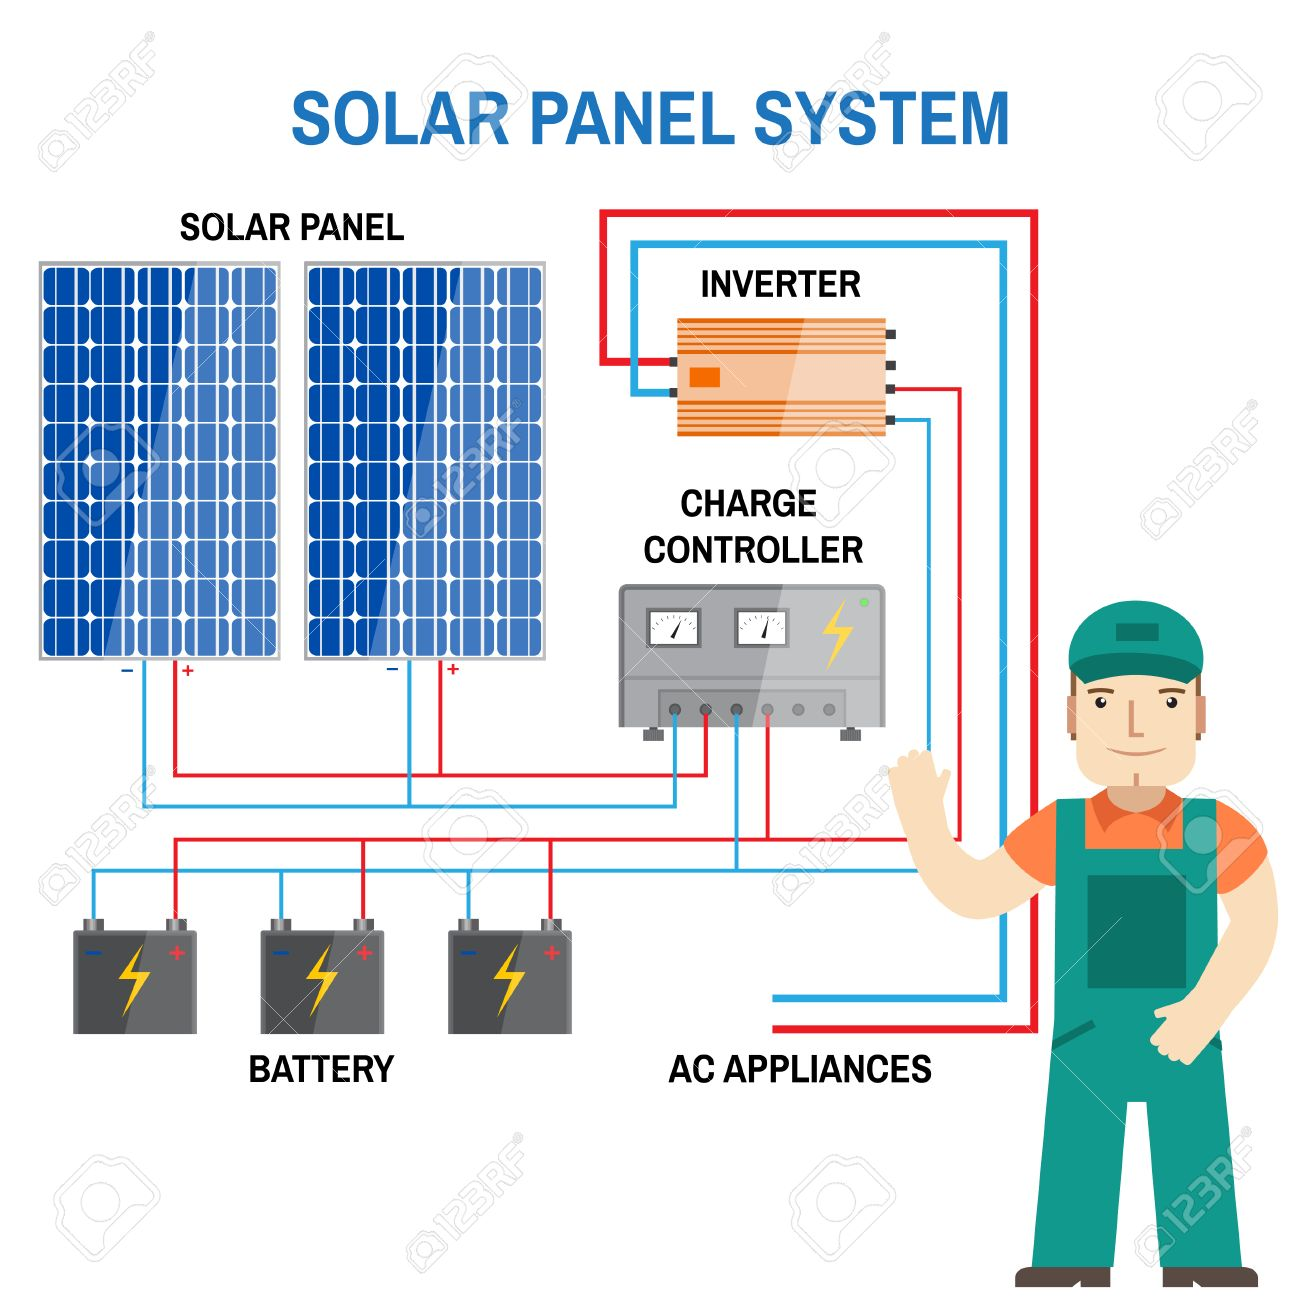 hight resolution of solar panel system renewable energy concept simplified diagram solar panel system block diagram solar panel system diagram